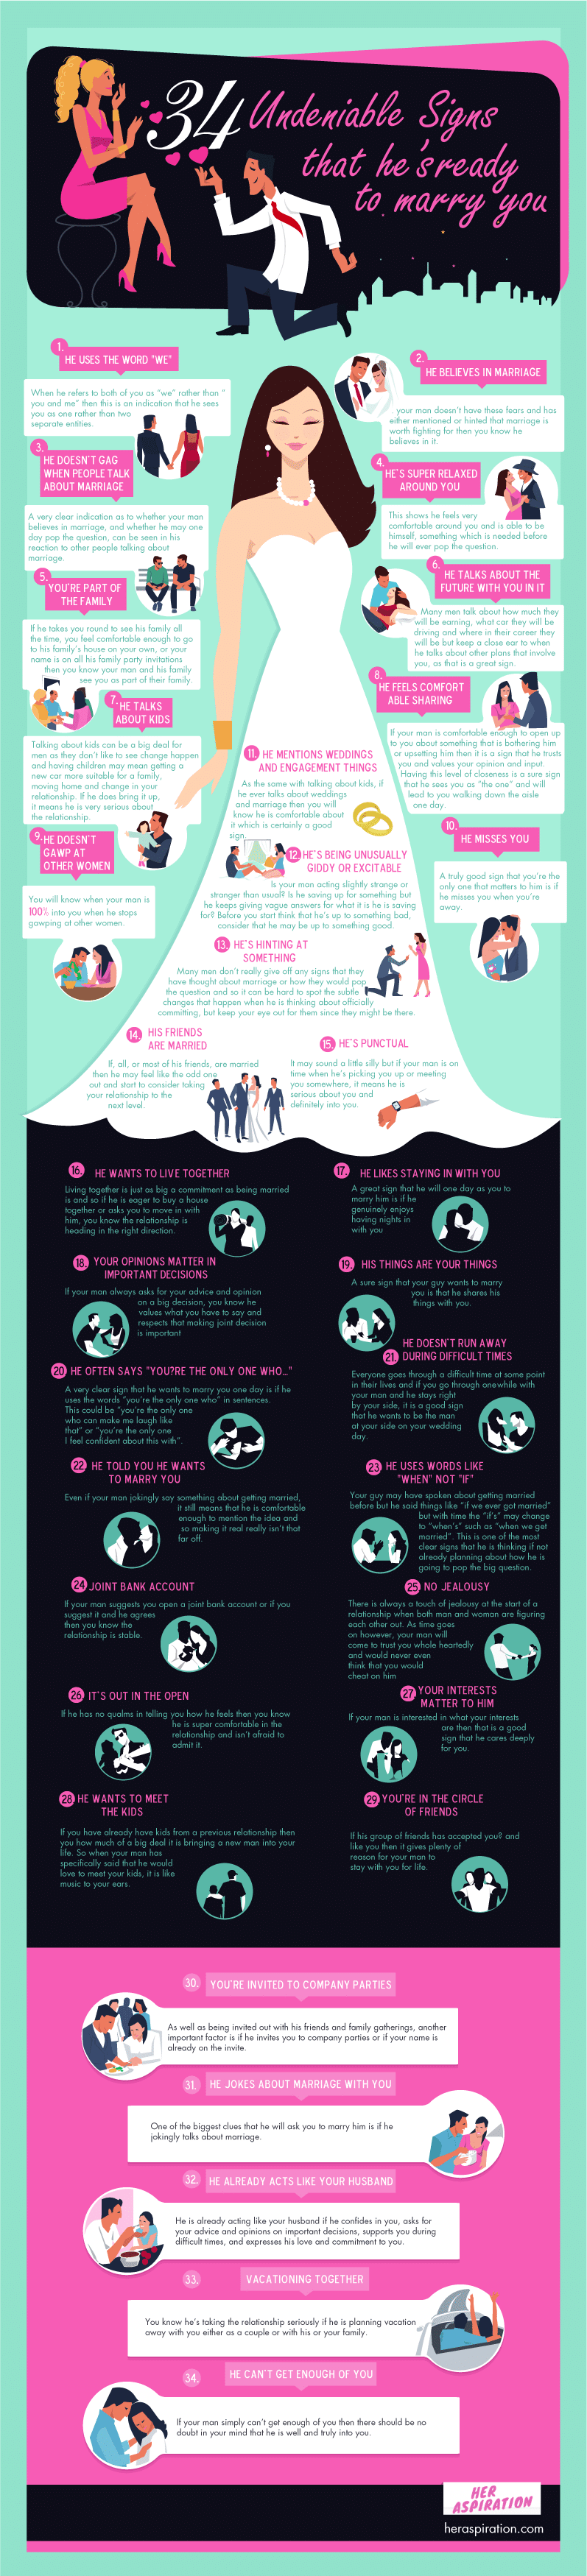 Signs He Wants to Marry You Infographic